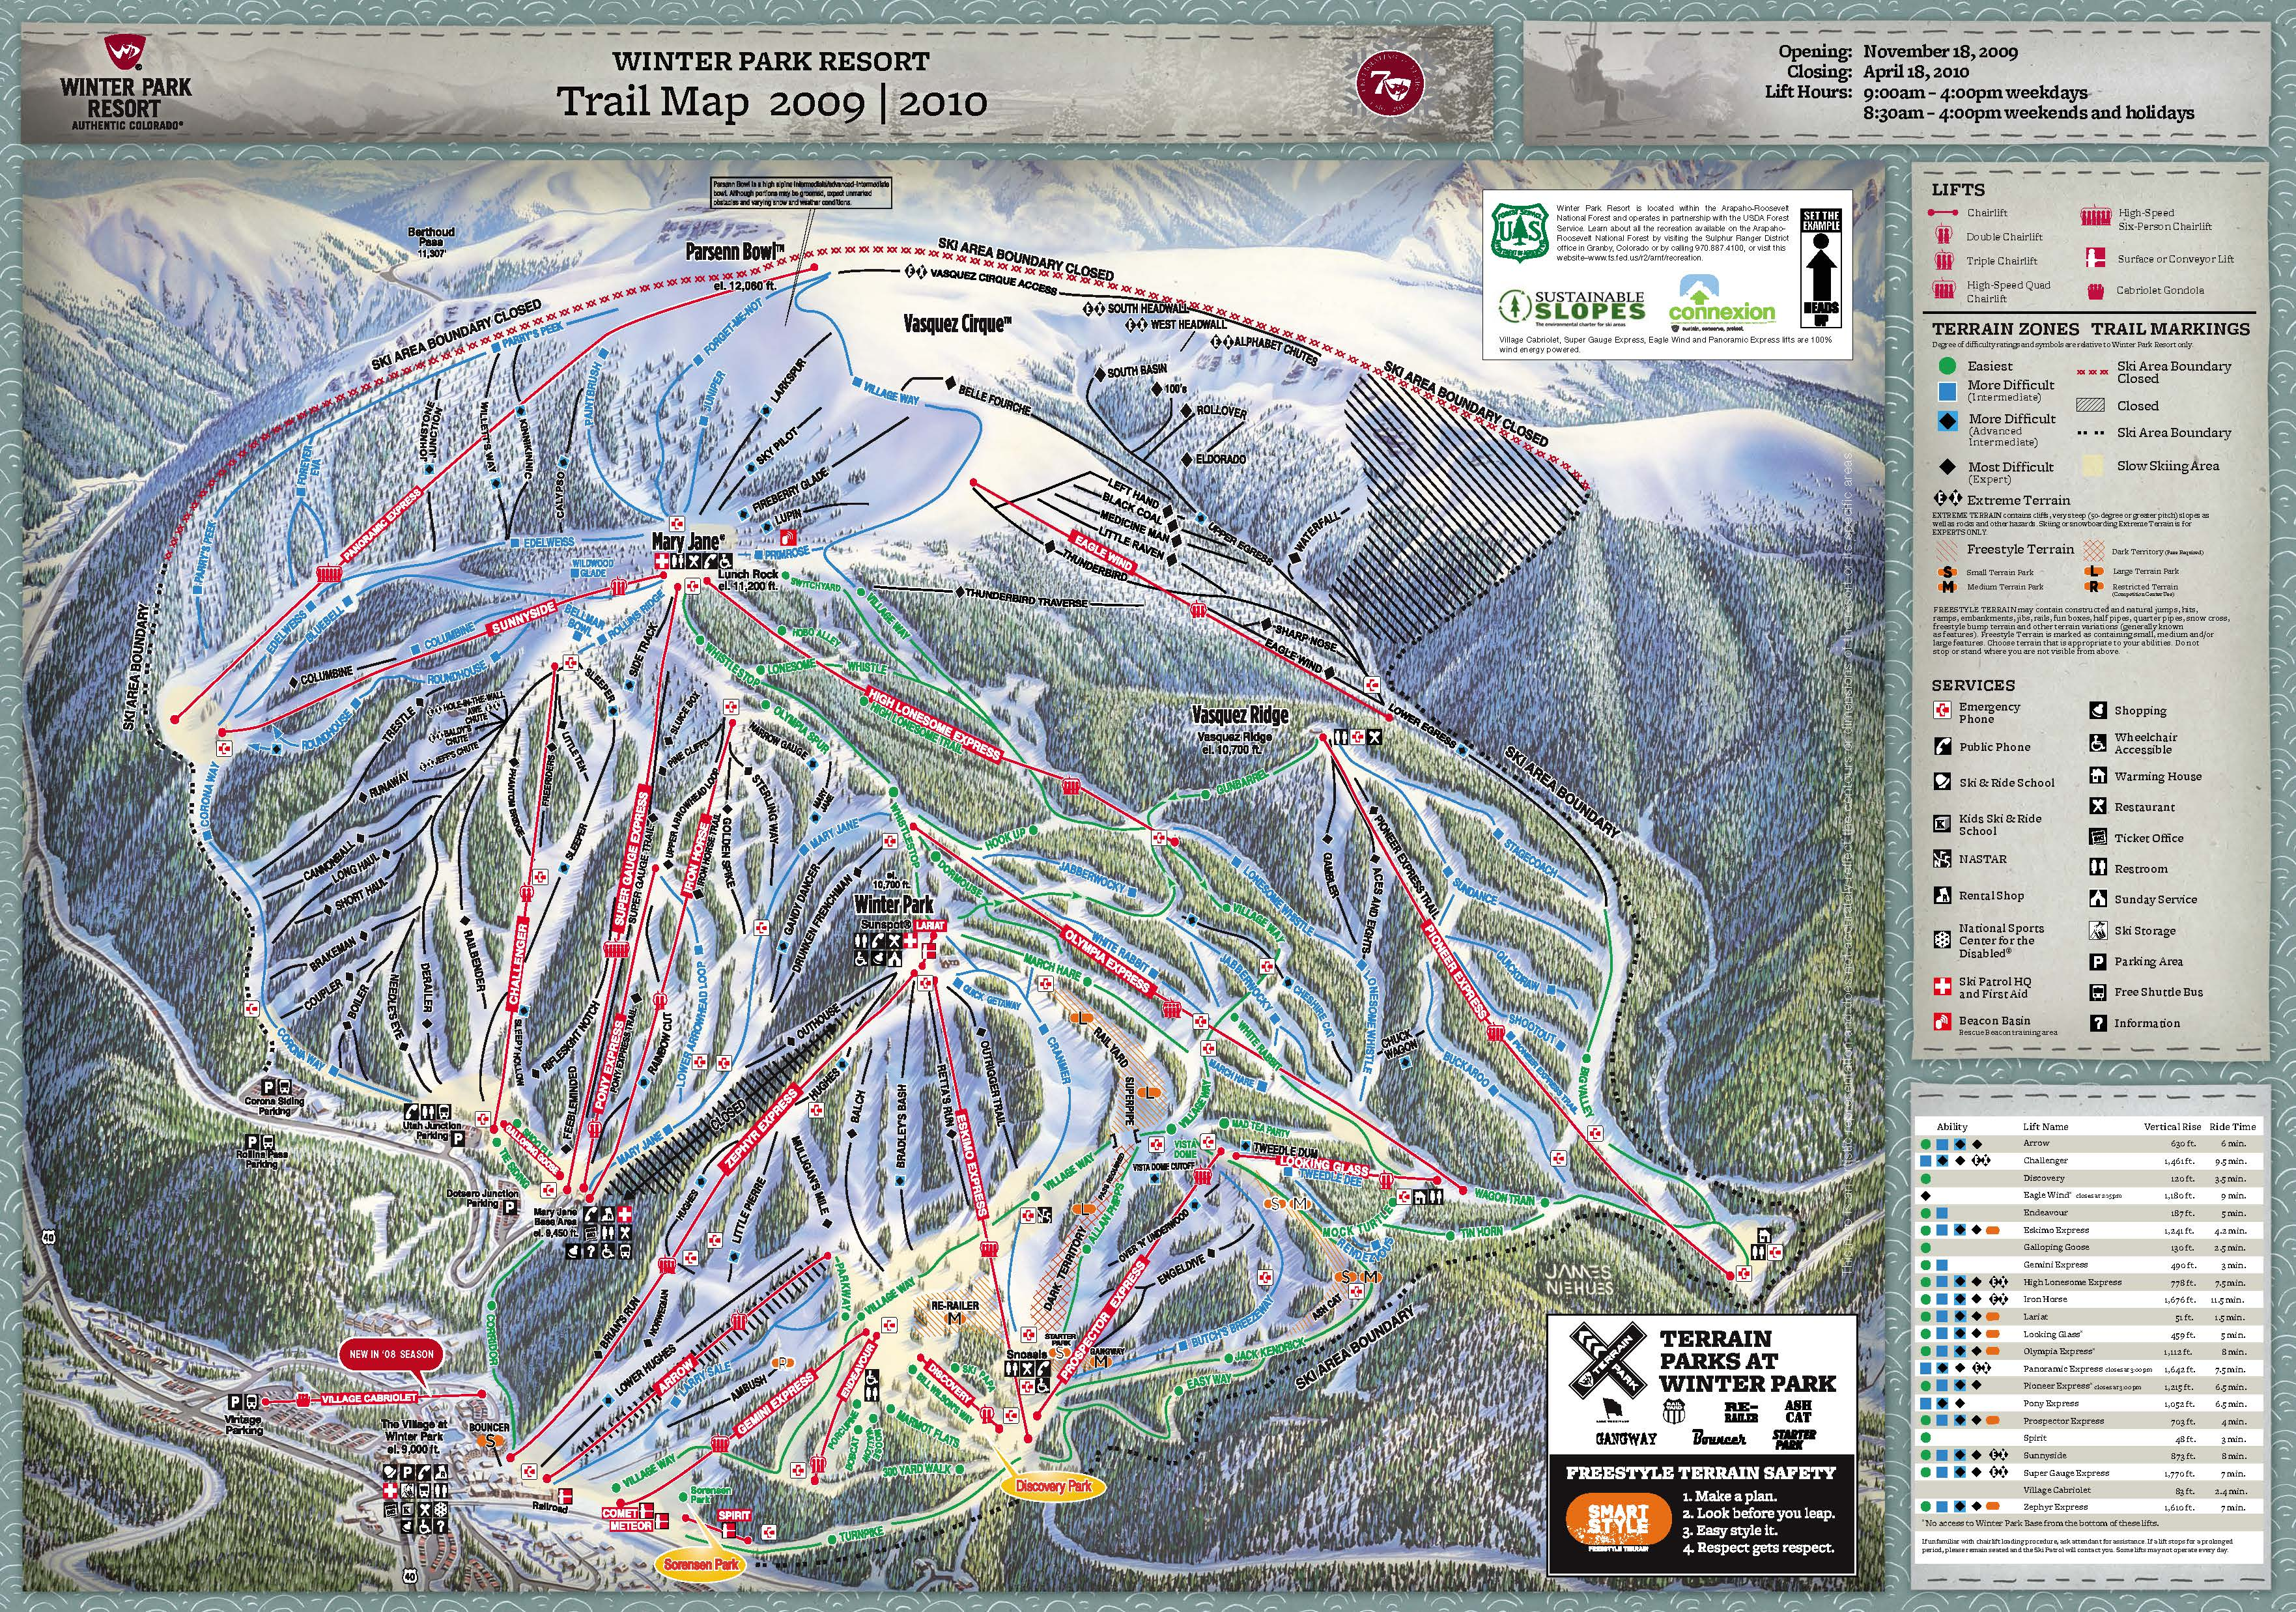 Winter Park piste map